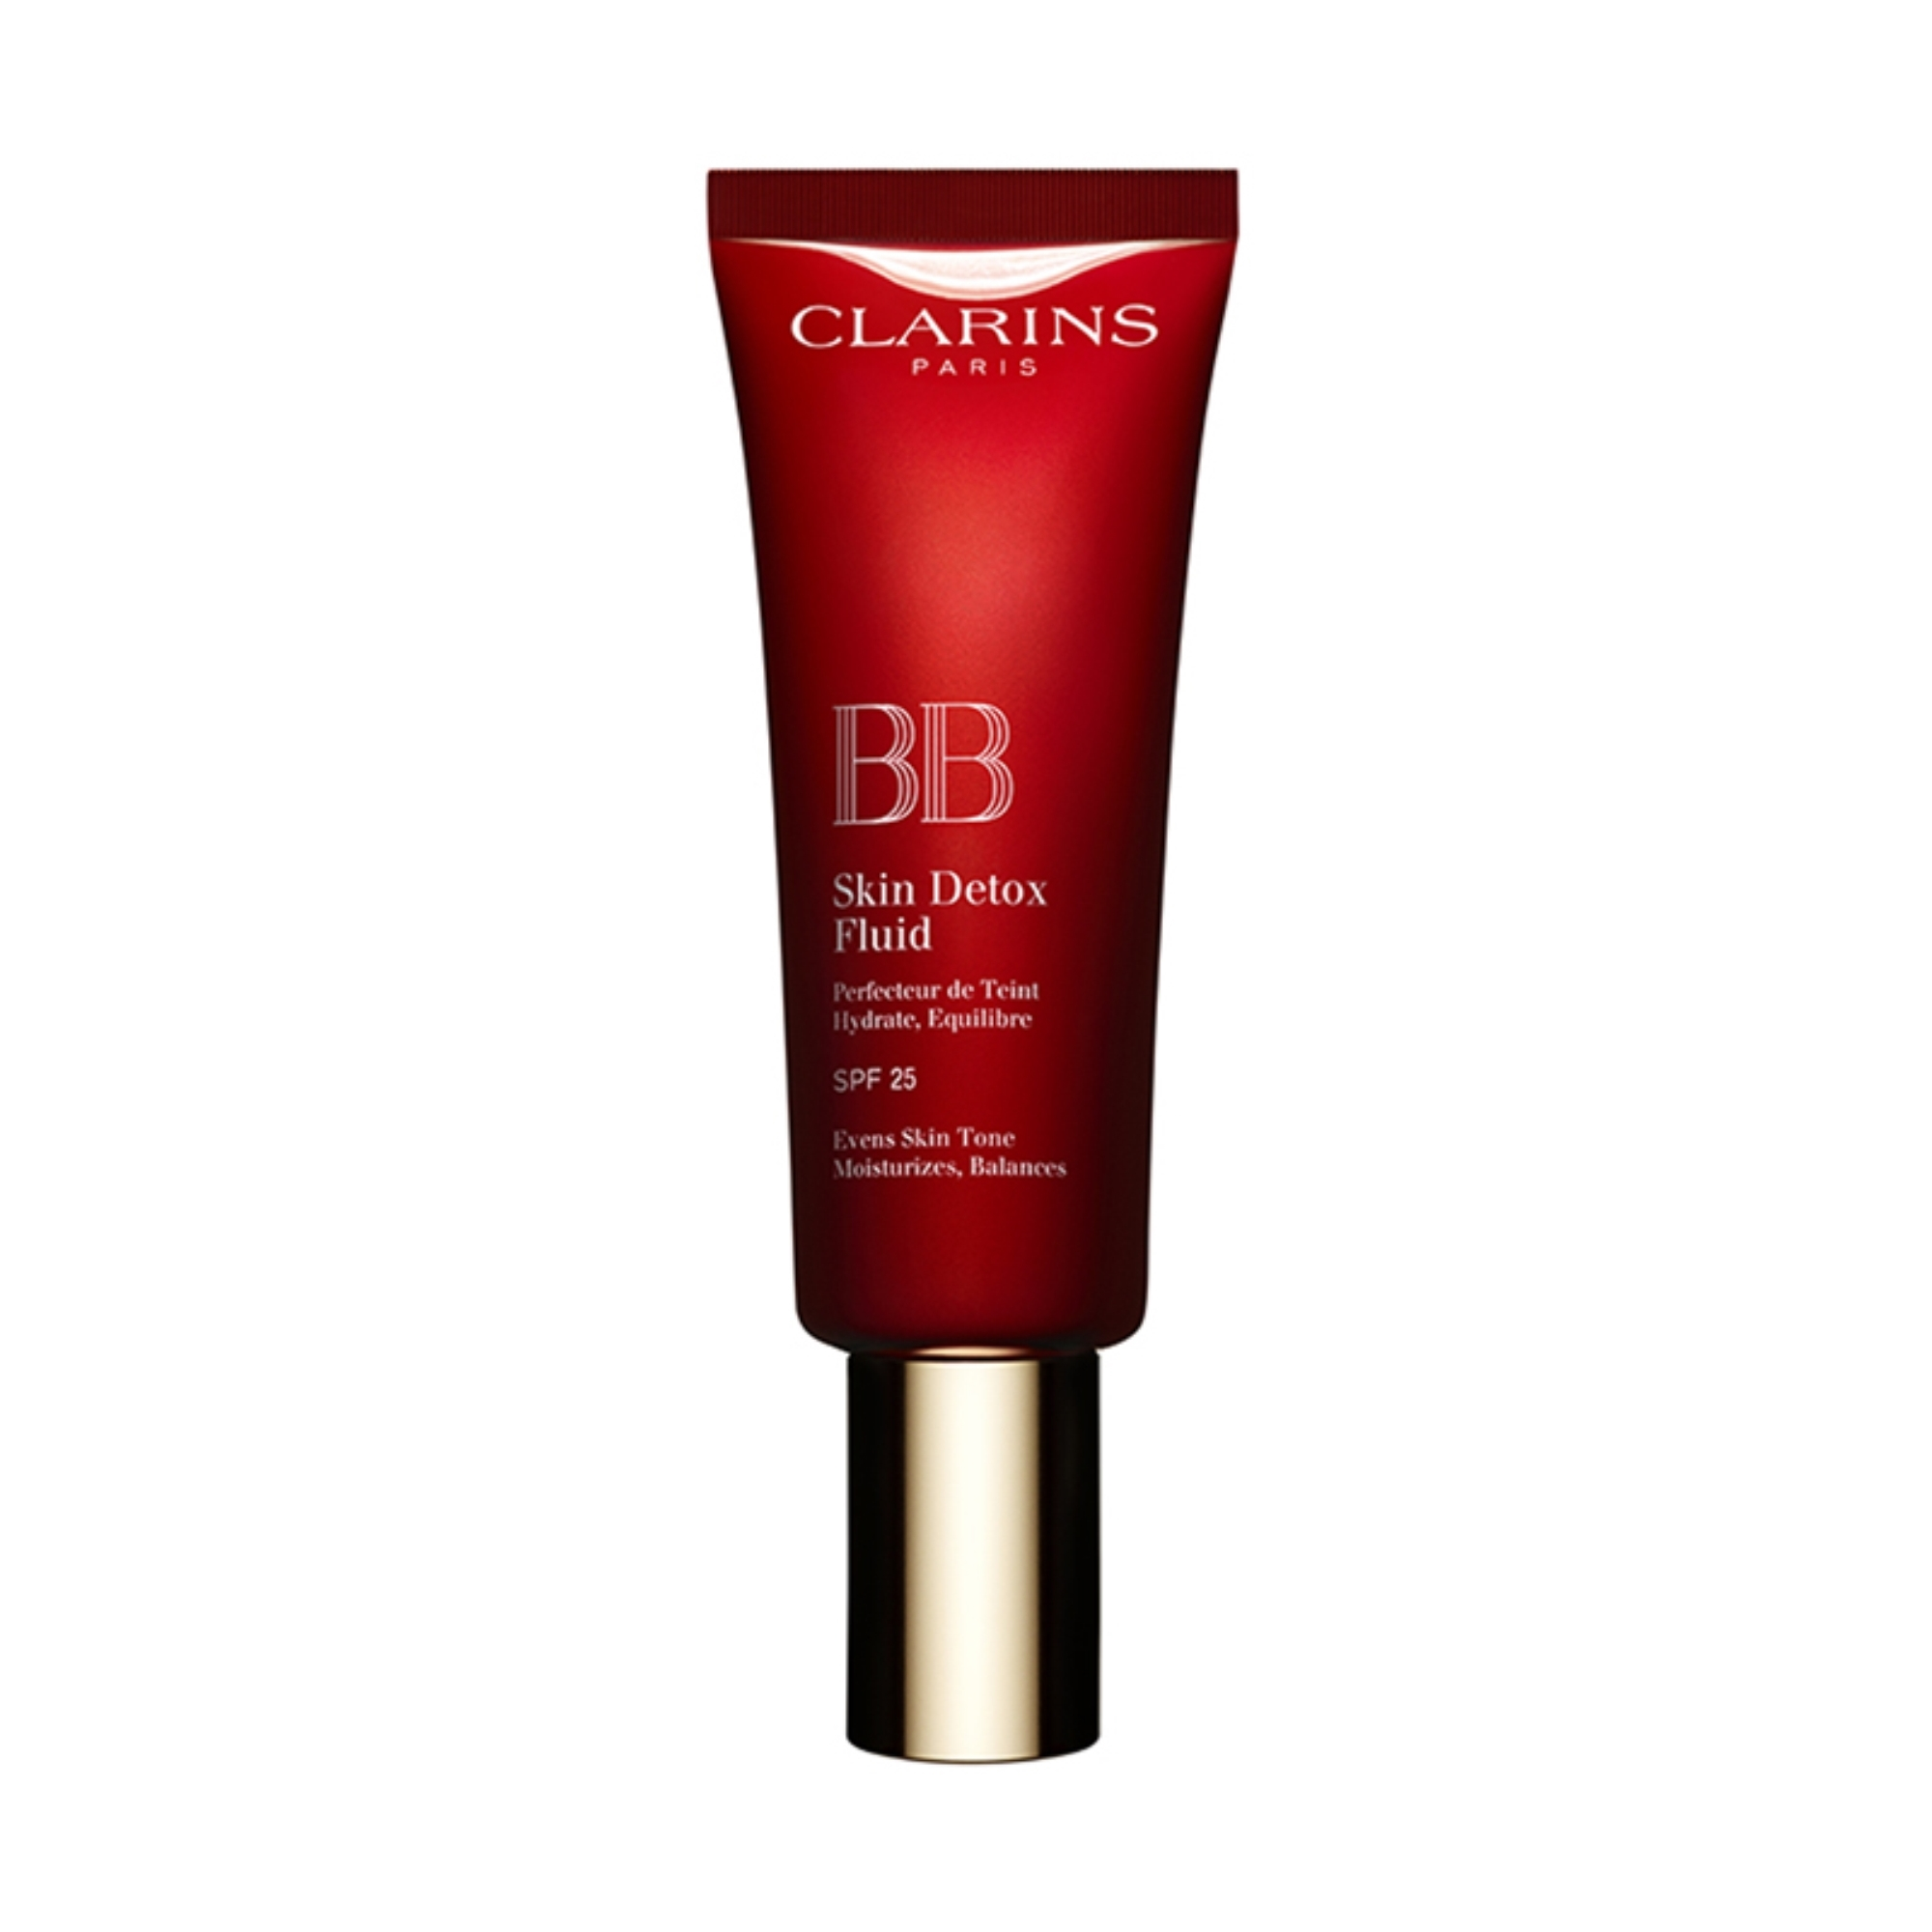 BB Skin Detox Fluid foundation